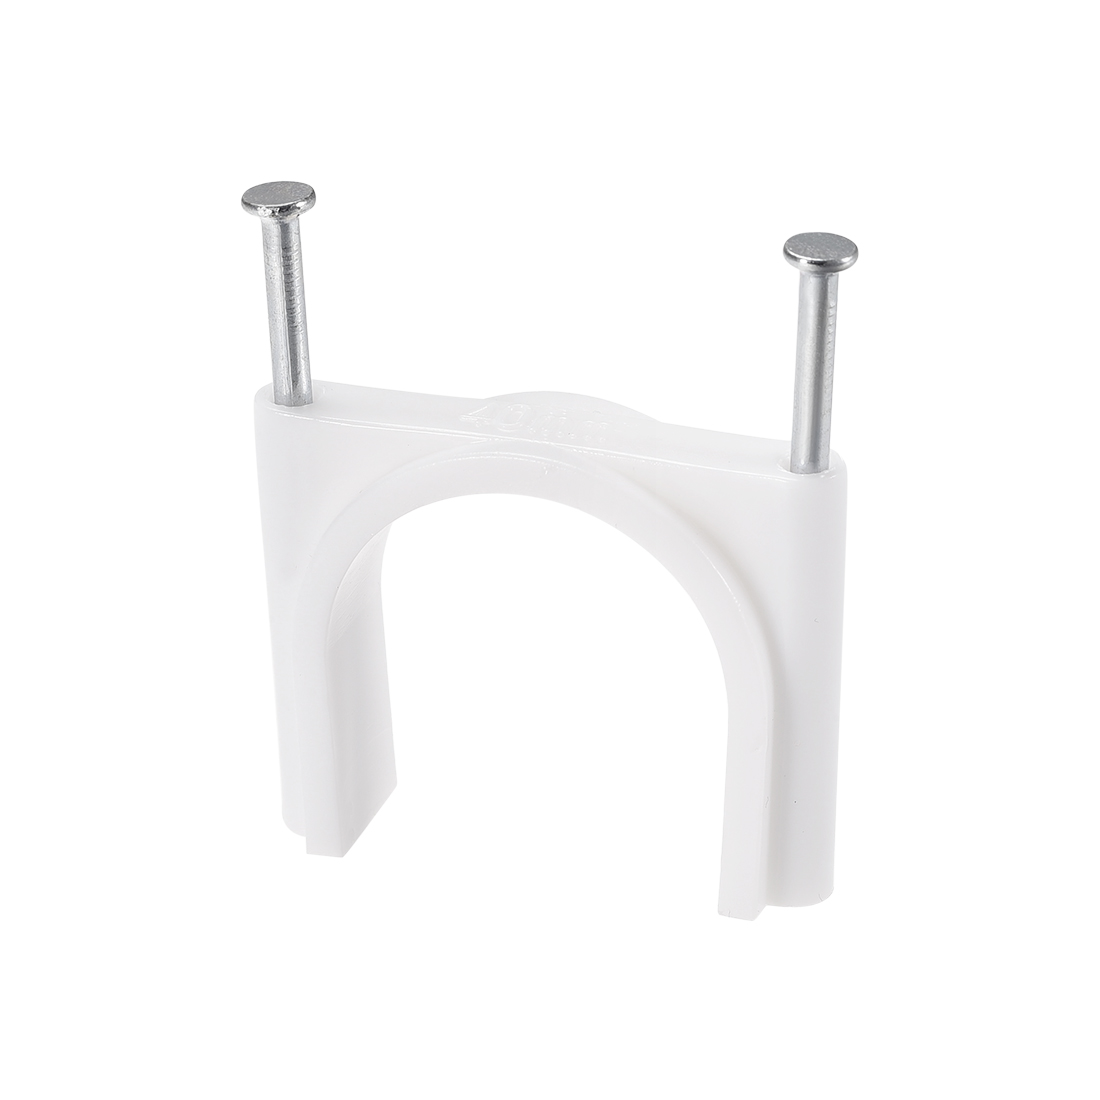 40mm Round White Wire Clips Clamps Cable Holder Fastener with Nail 12Pcs